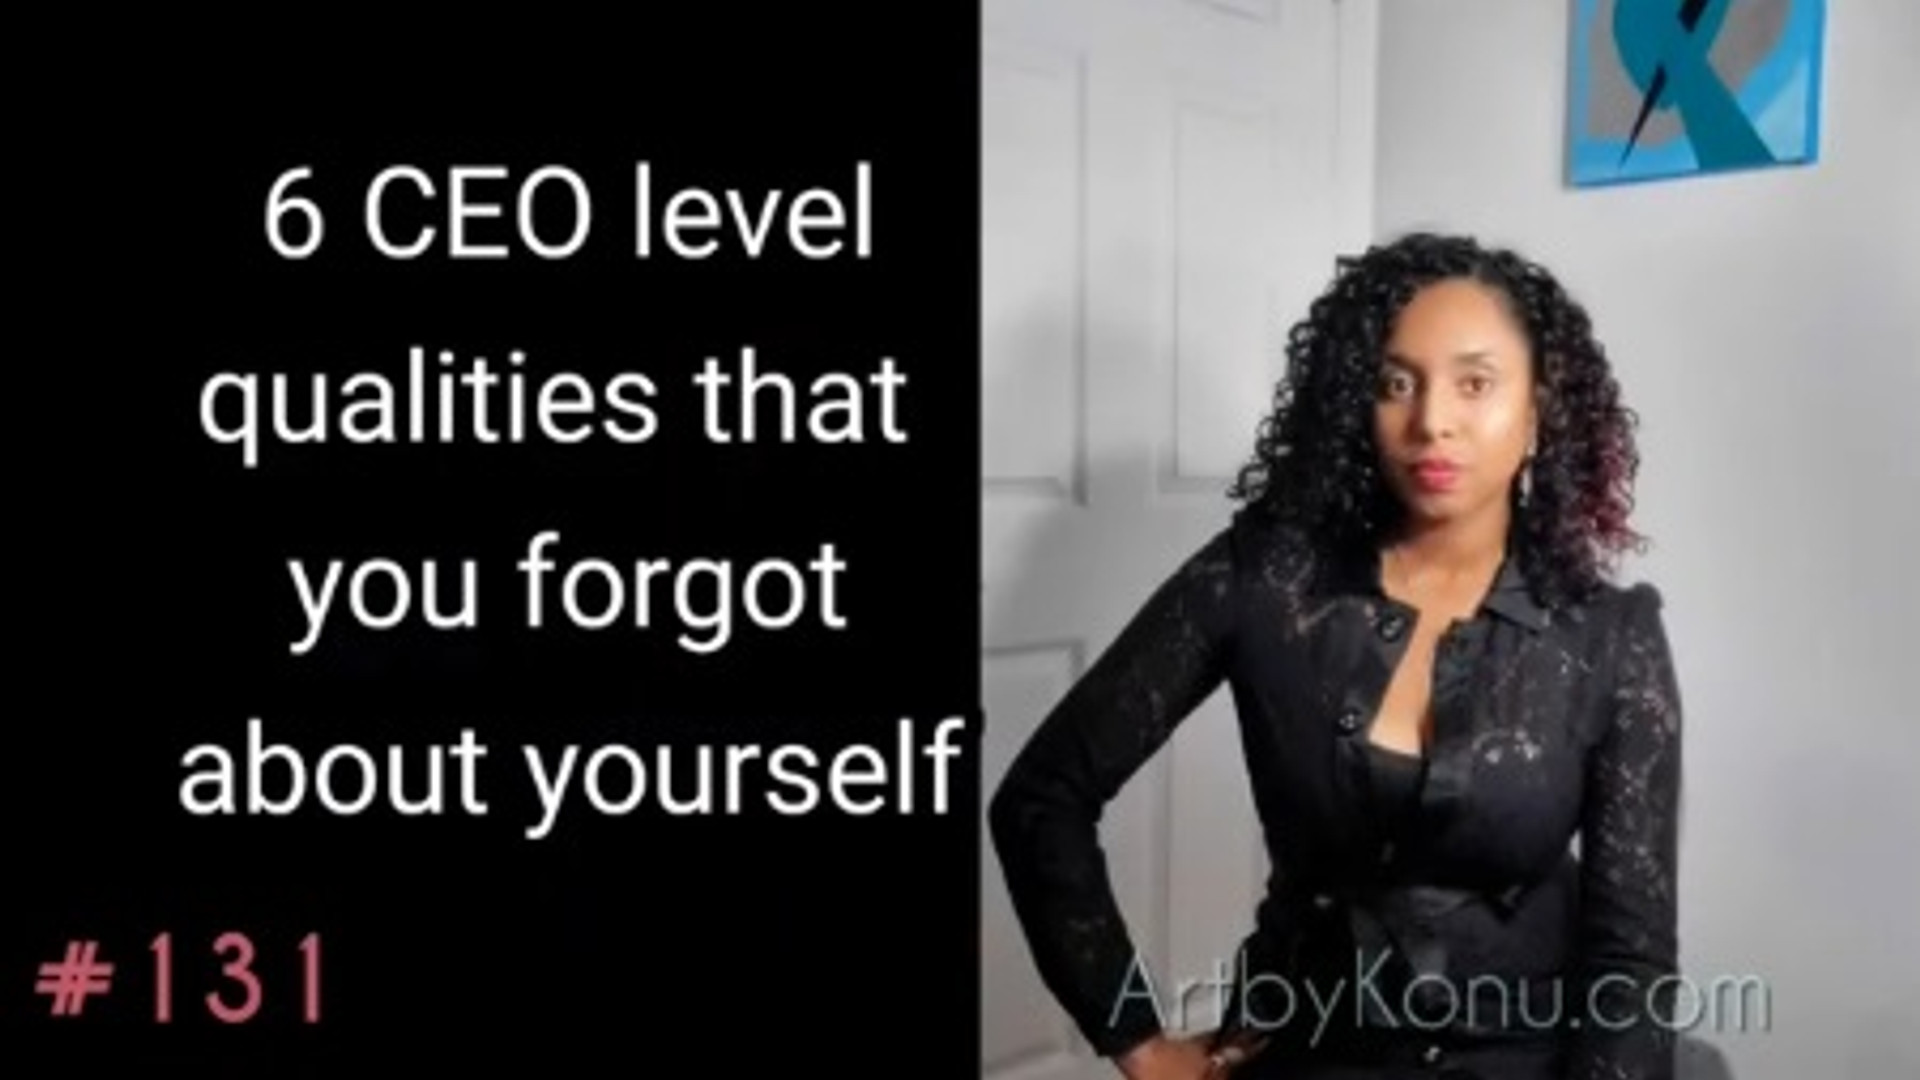 6 CEO Level qualities you forgot about yourself